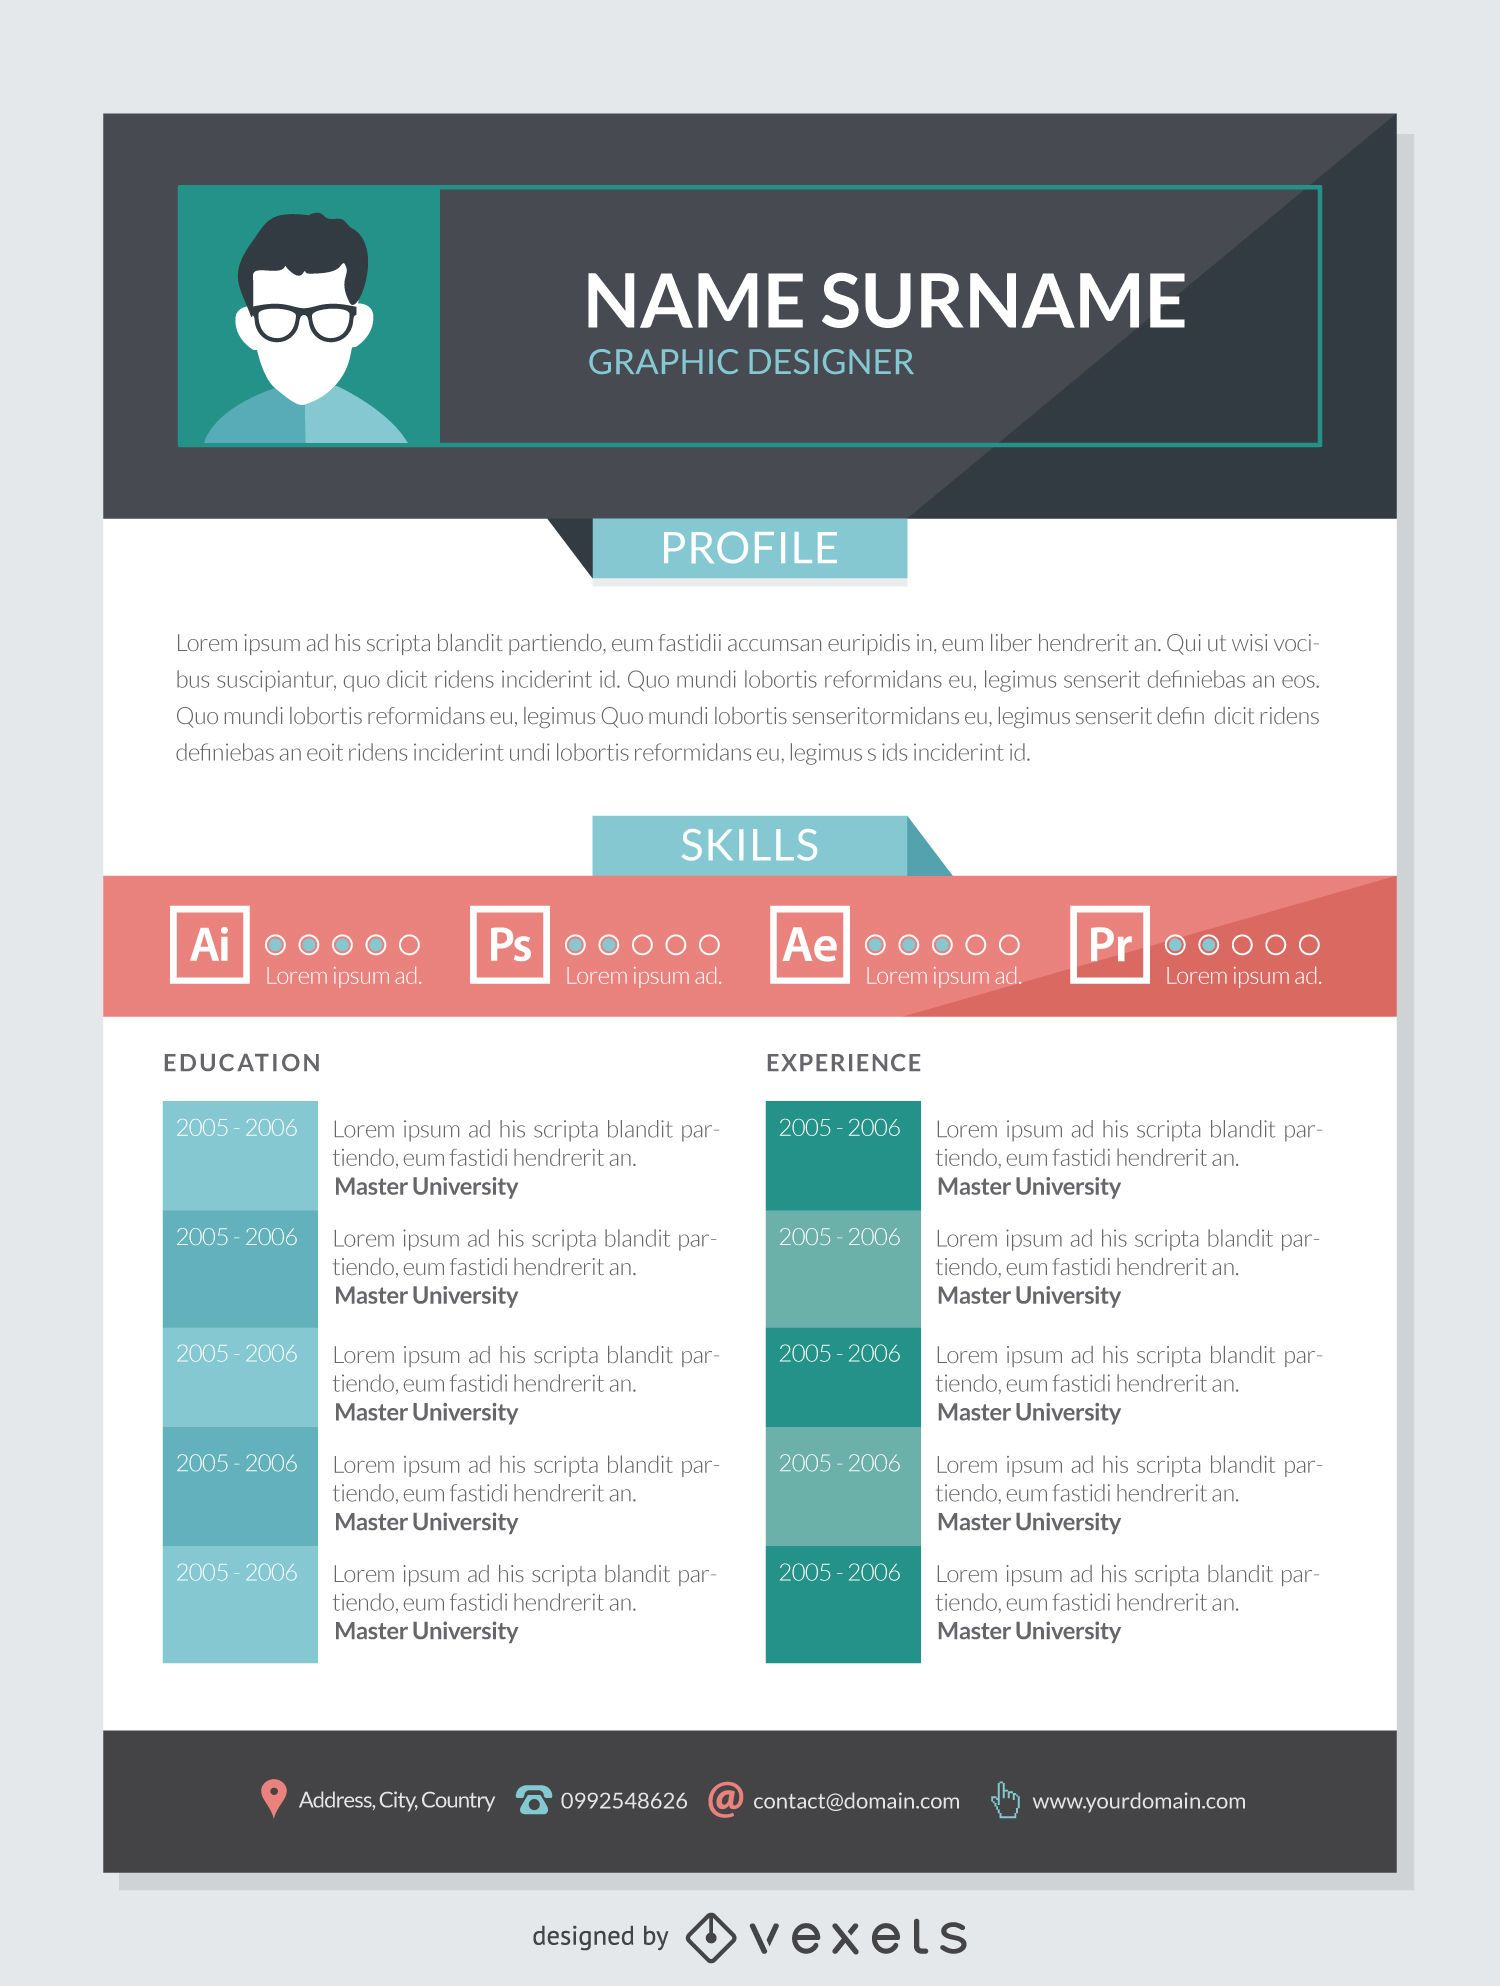 graphic designer cv mockup template